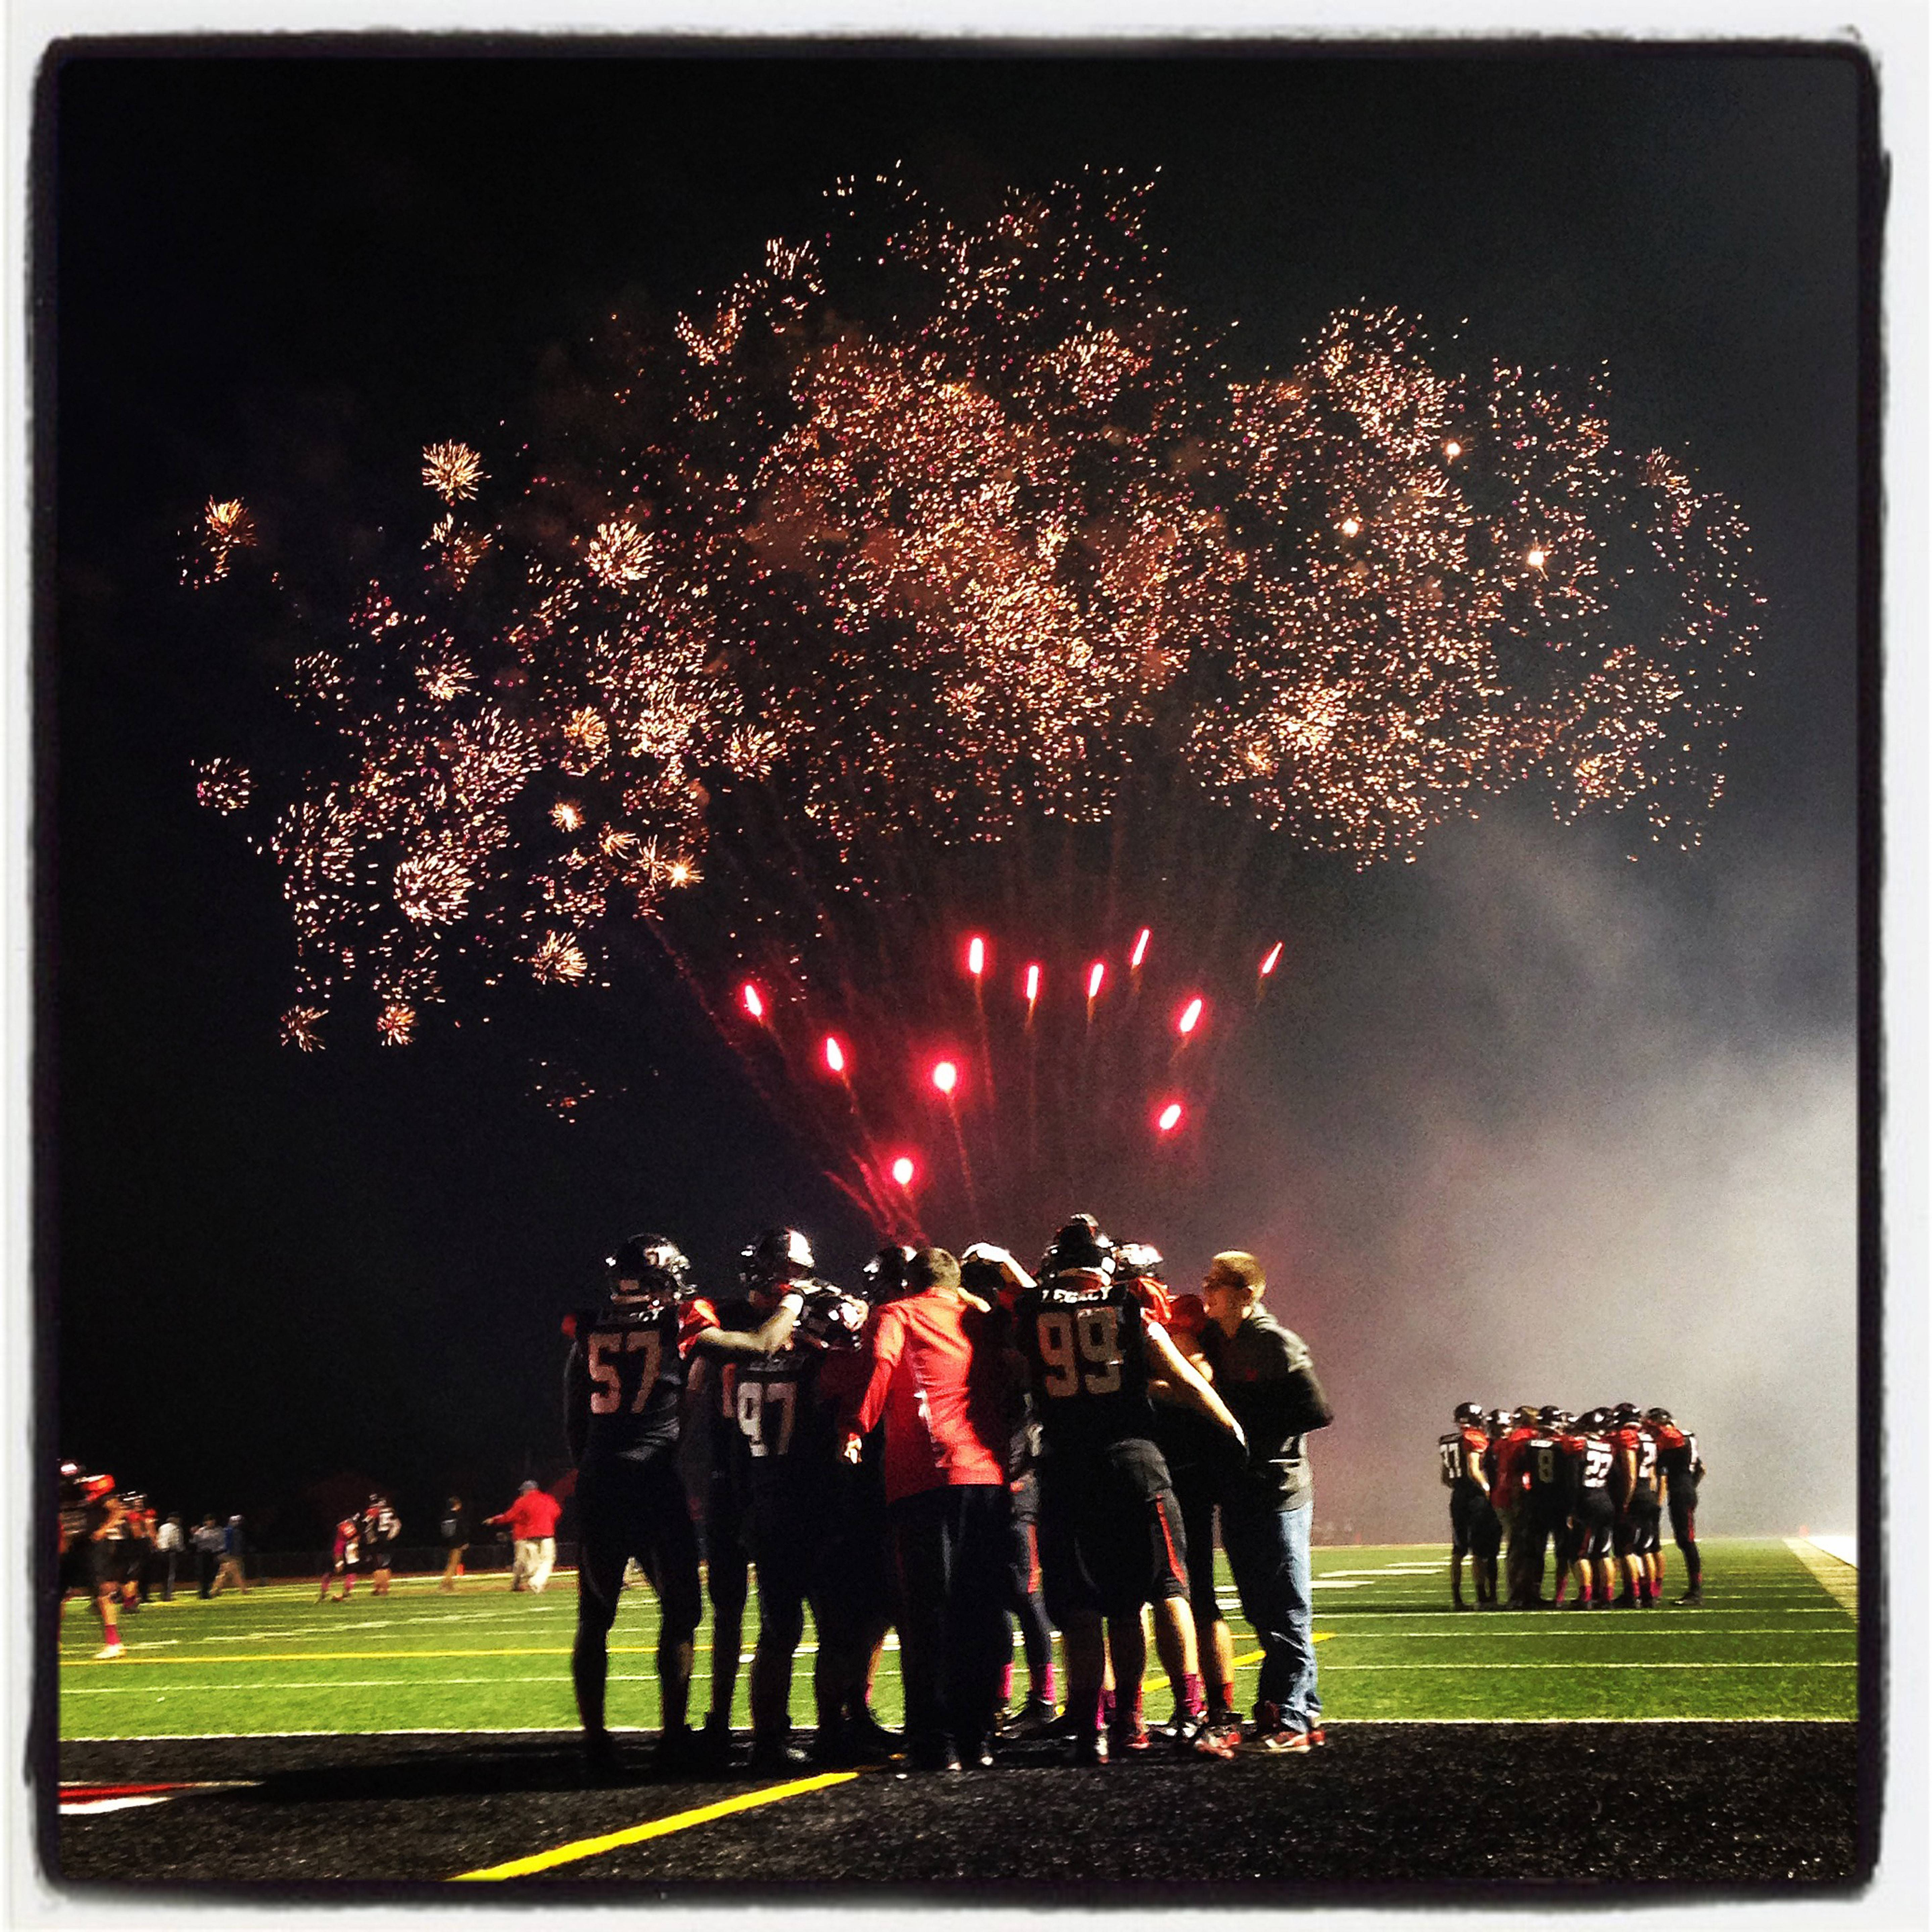 Fireworks entertain fans in the stands while Huntley High School varsity football players huddle up as they break from their pregame warm-up drills before their game vs. Dundee-Crown High School Friday night.